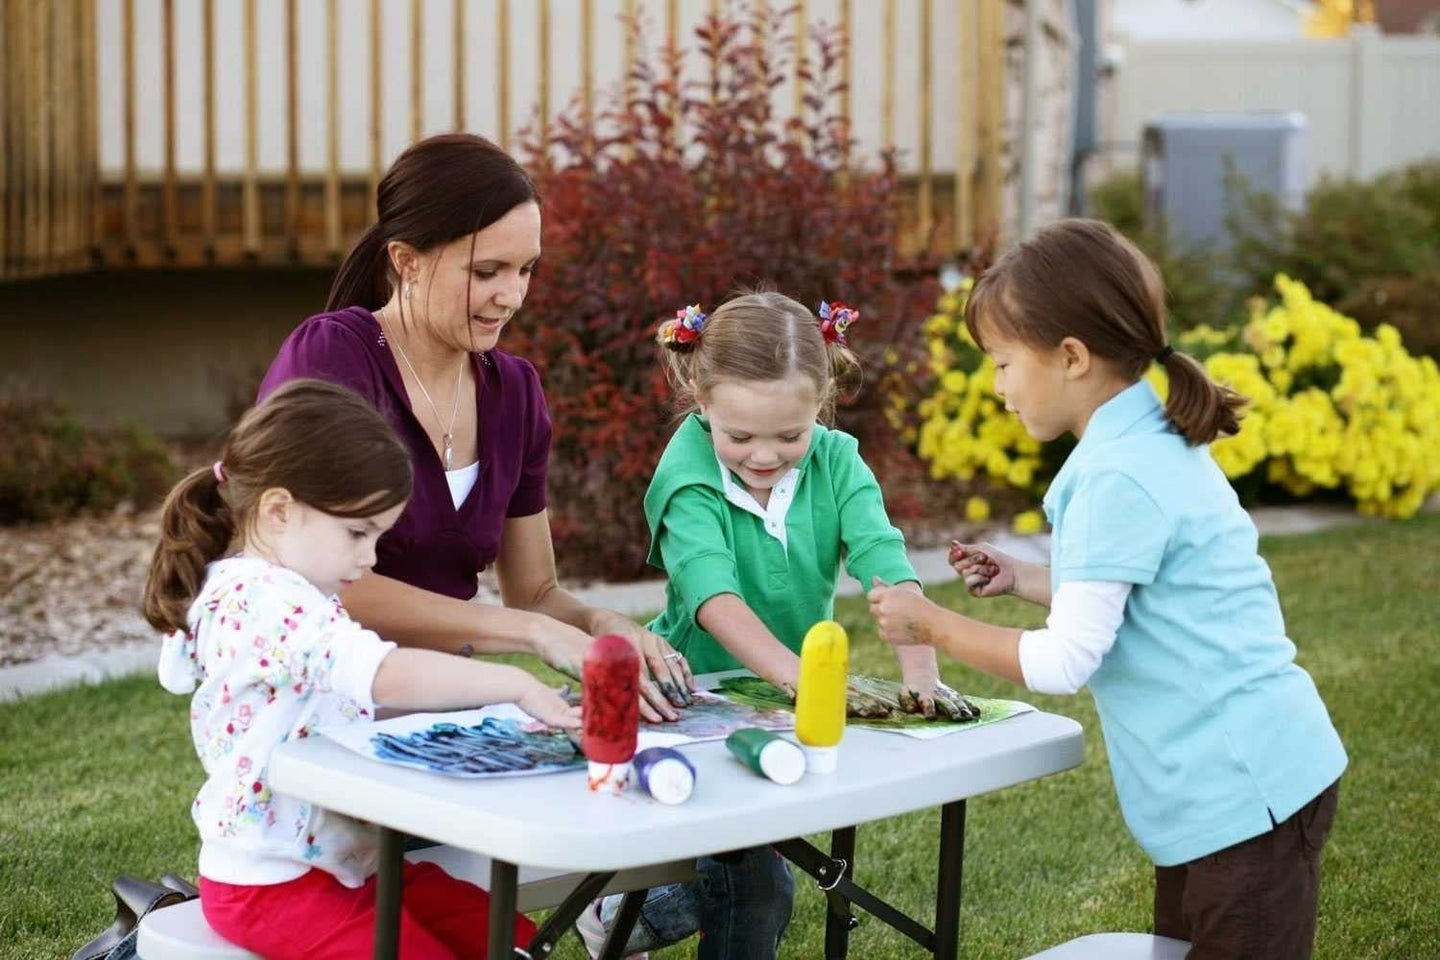 3 Children playing on a picnic table.